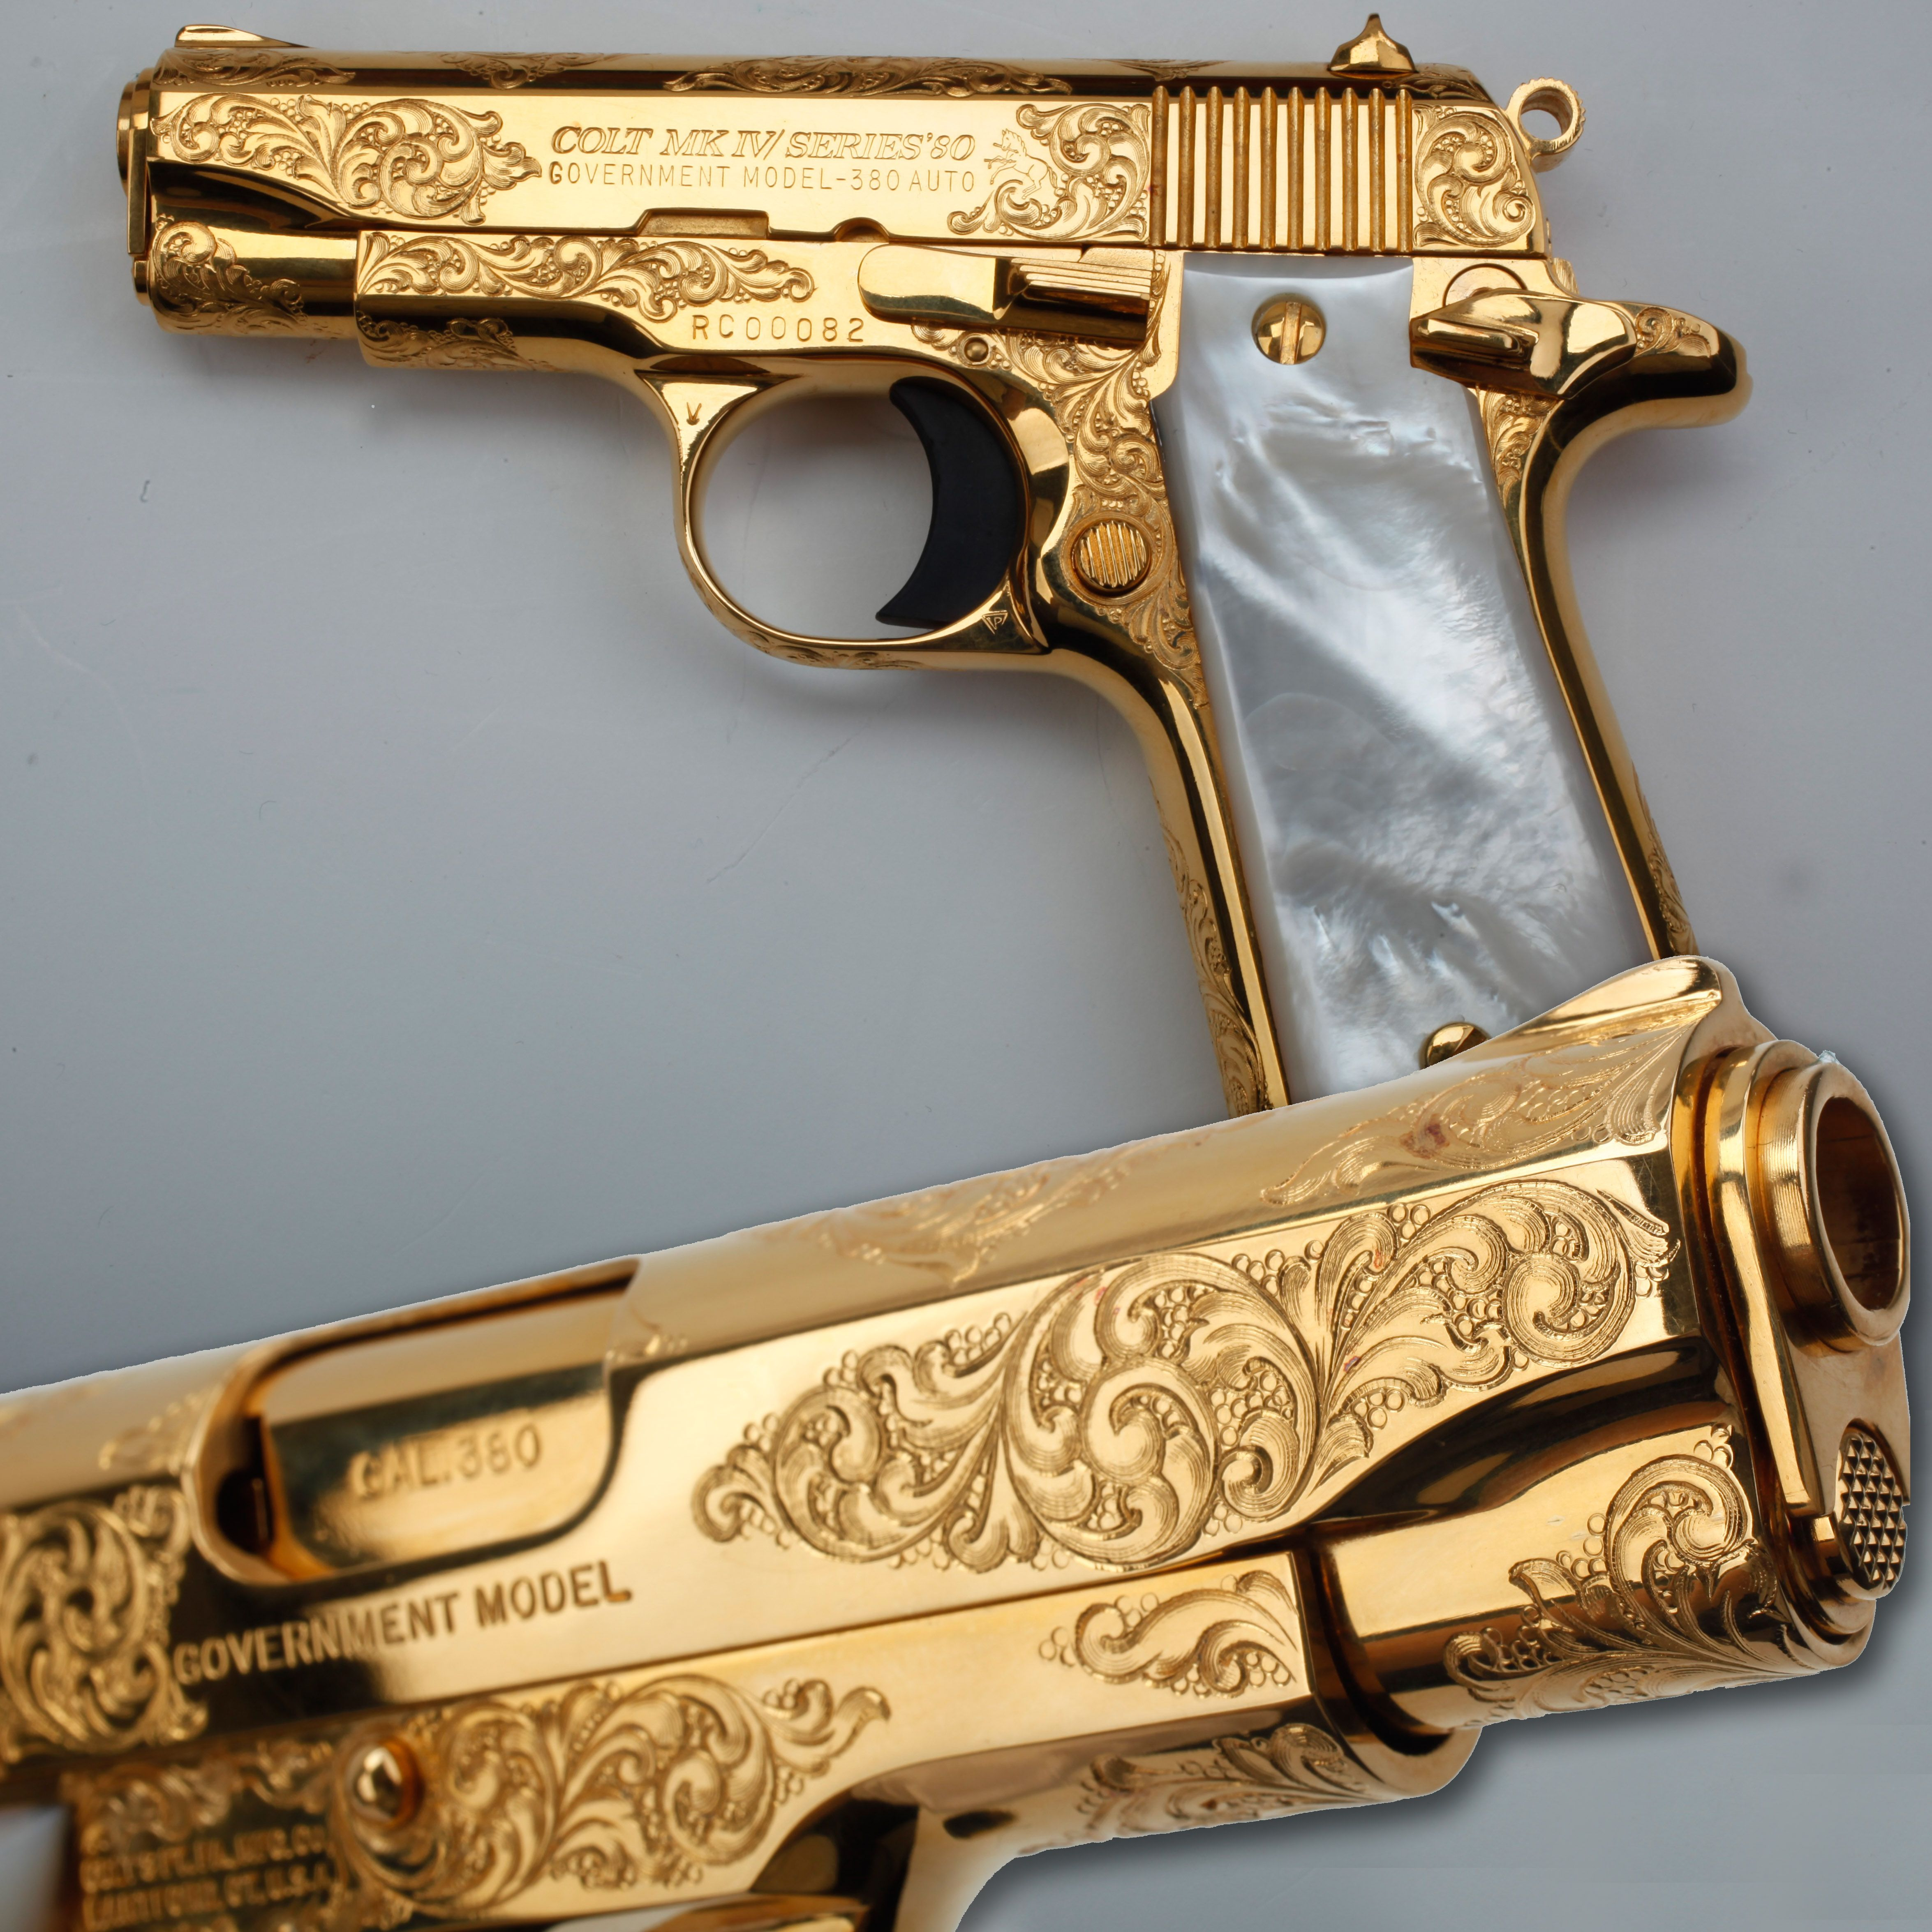 """""""A Golden Colt - Our GOTD Colt .380 Government is pretty close to the size of a Christmas tree ornament and with its factory engraving and mother-of-pearl grip panels, this diminutive pistol is a good reminder of the maxim that """"good things come in small packages."""" This pistol is on display as part of the Robert E. Petersen Gallery at the NRA National Firearms Museum in Fairfax, VA."""""""